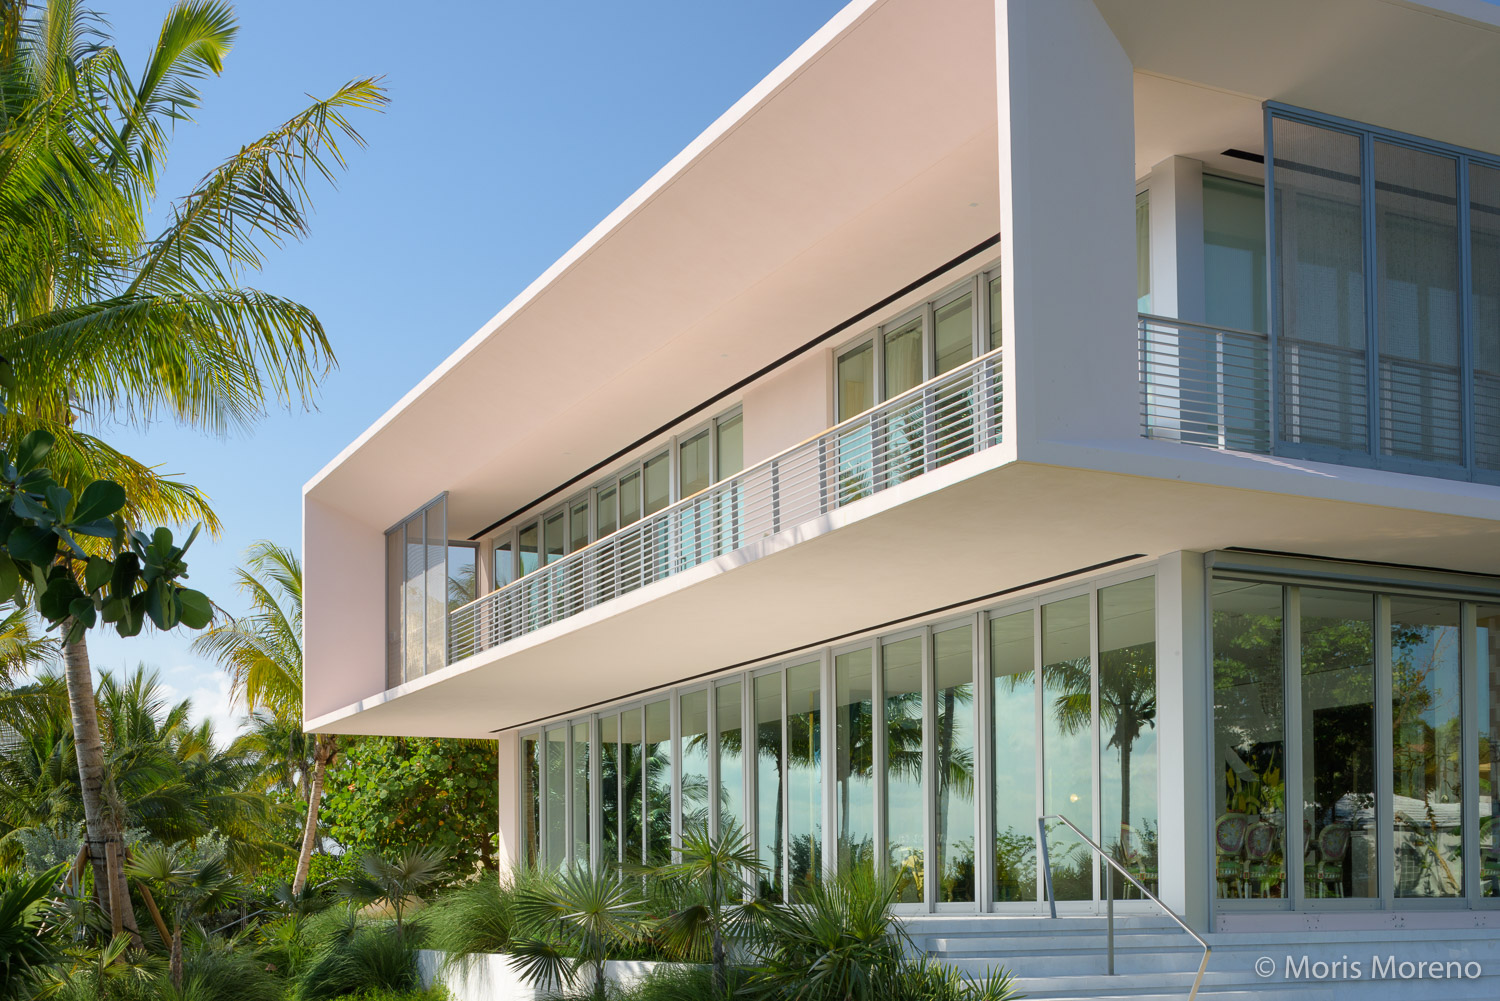 Miami's new Faena district